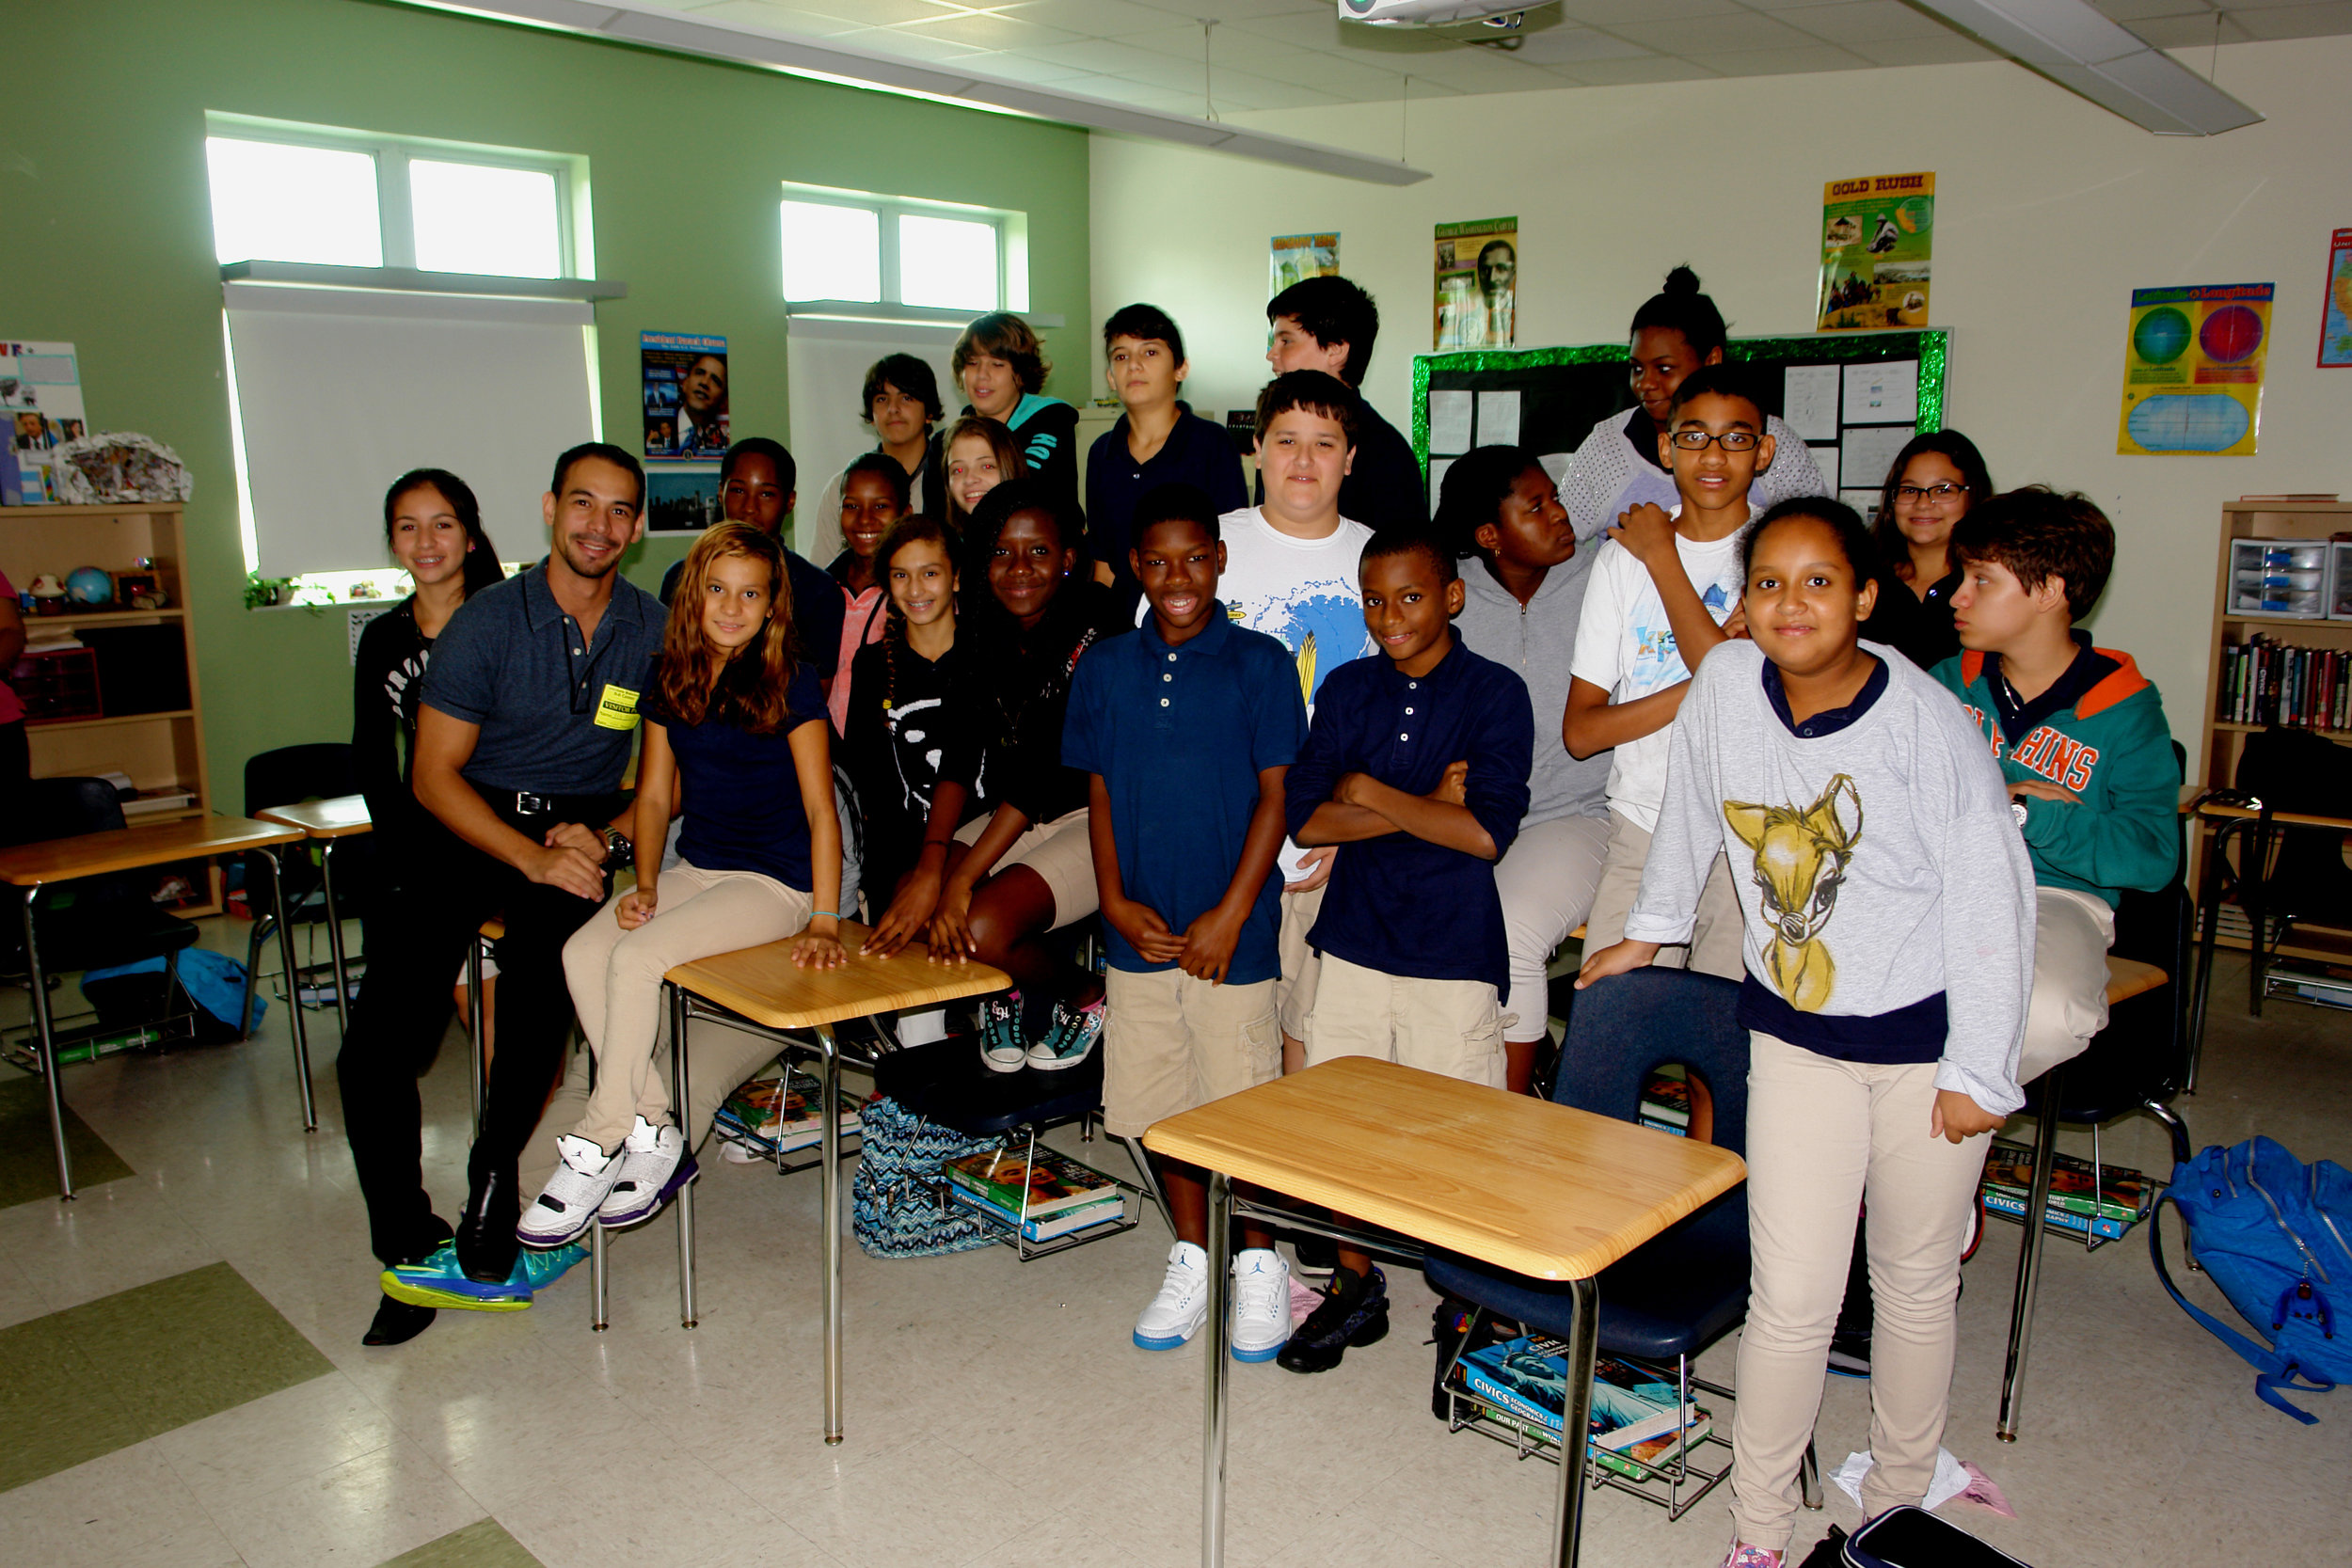 Fort Lauderdale Middle School Career Day, April 7th , 2017. This has been one of the most rewarding experience as an artist. I had the opportunity to present my works and the process of creating them to this incredibly gifted group of students.